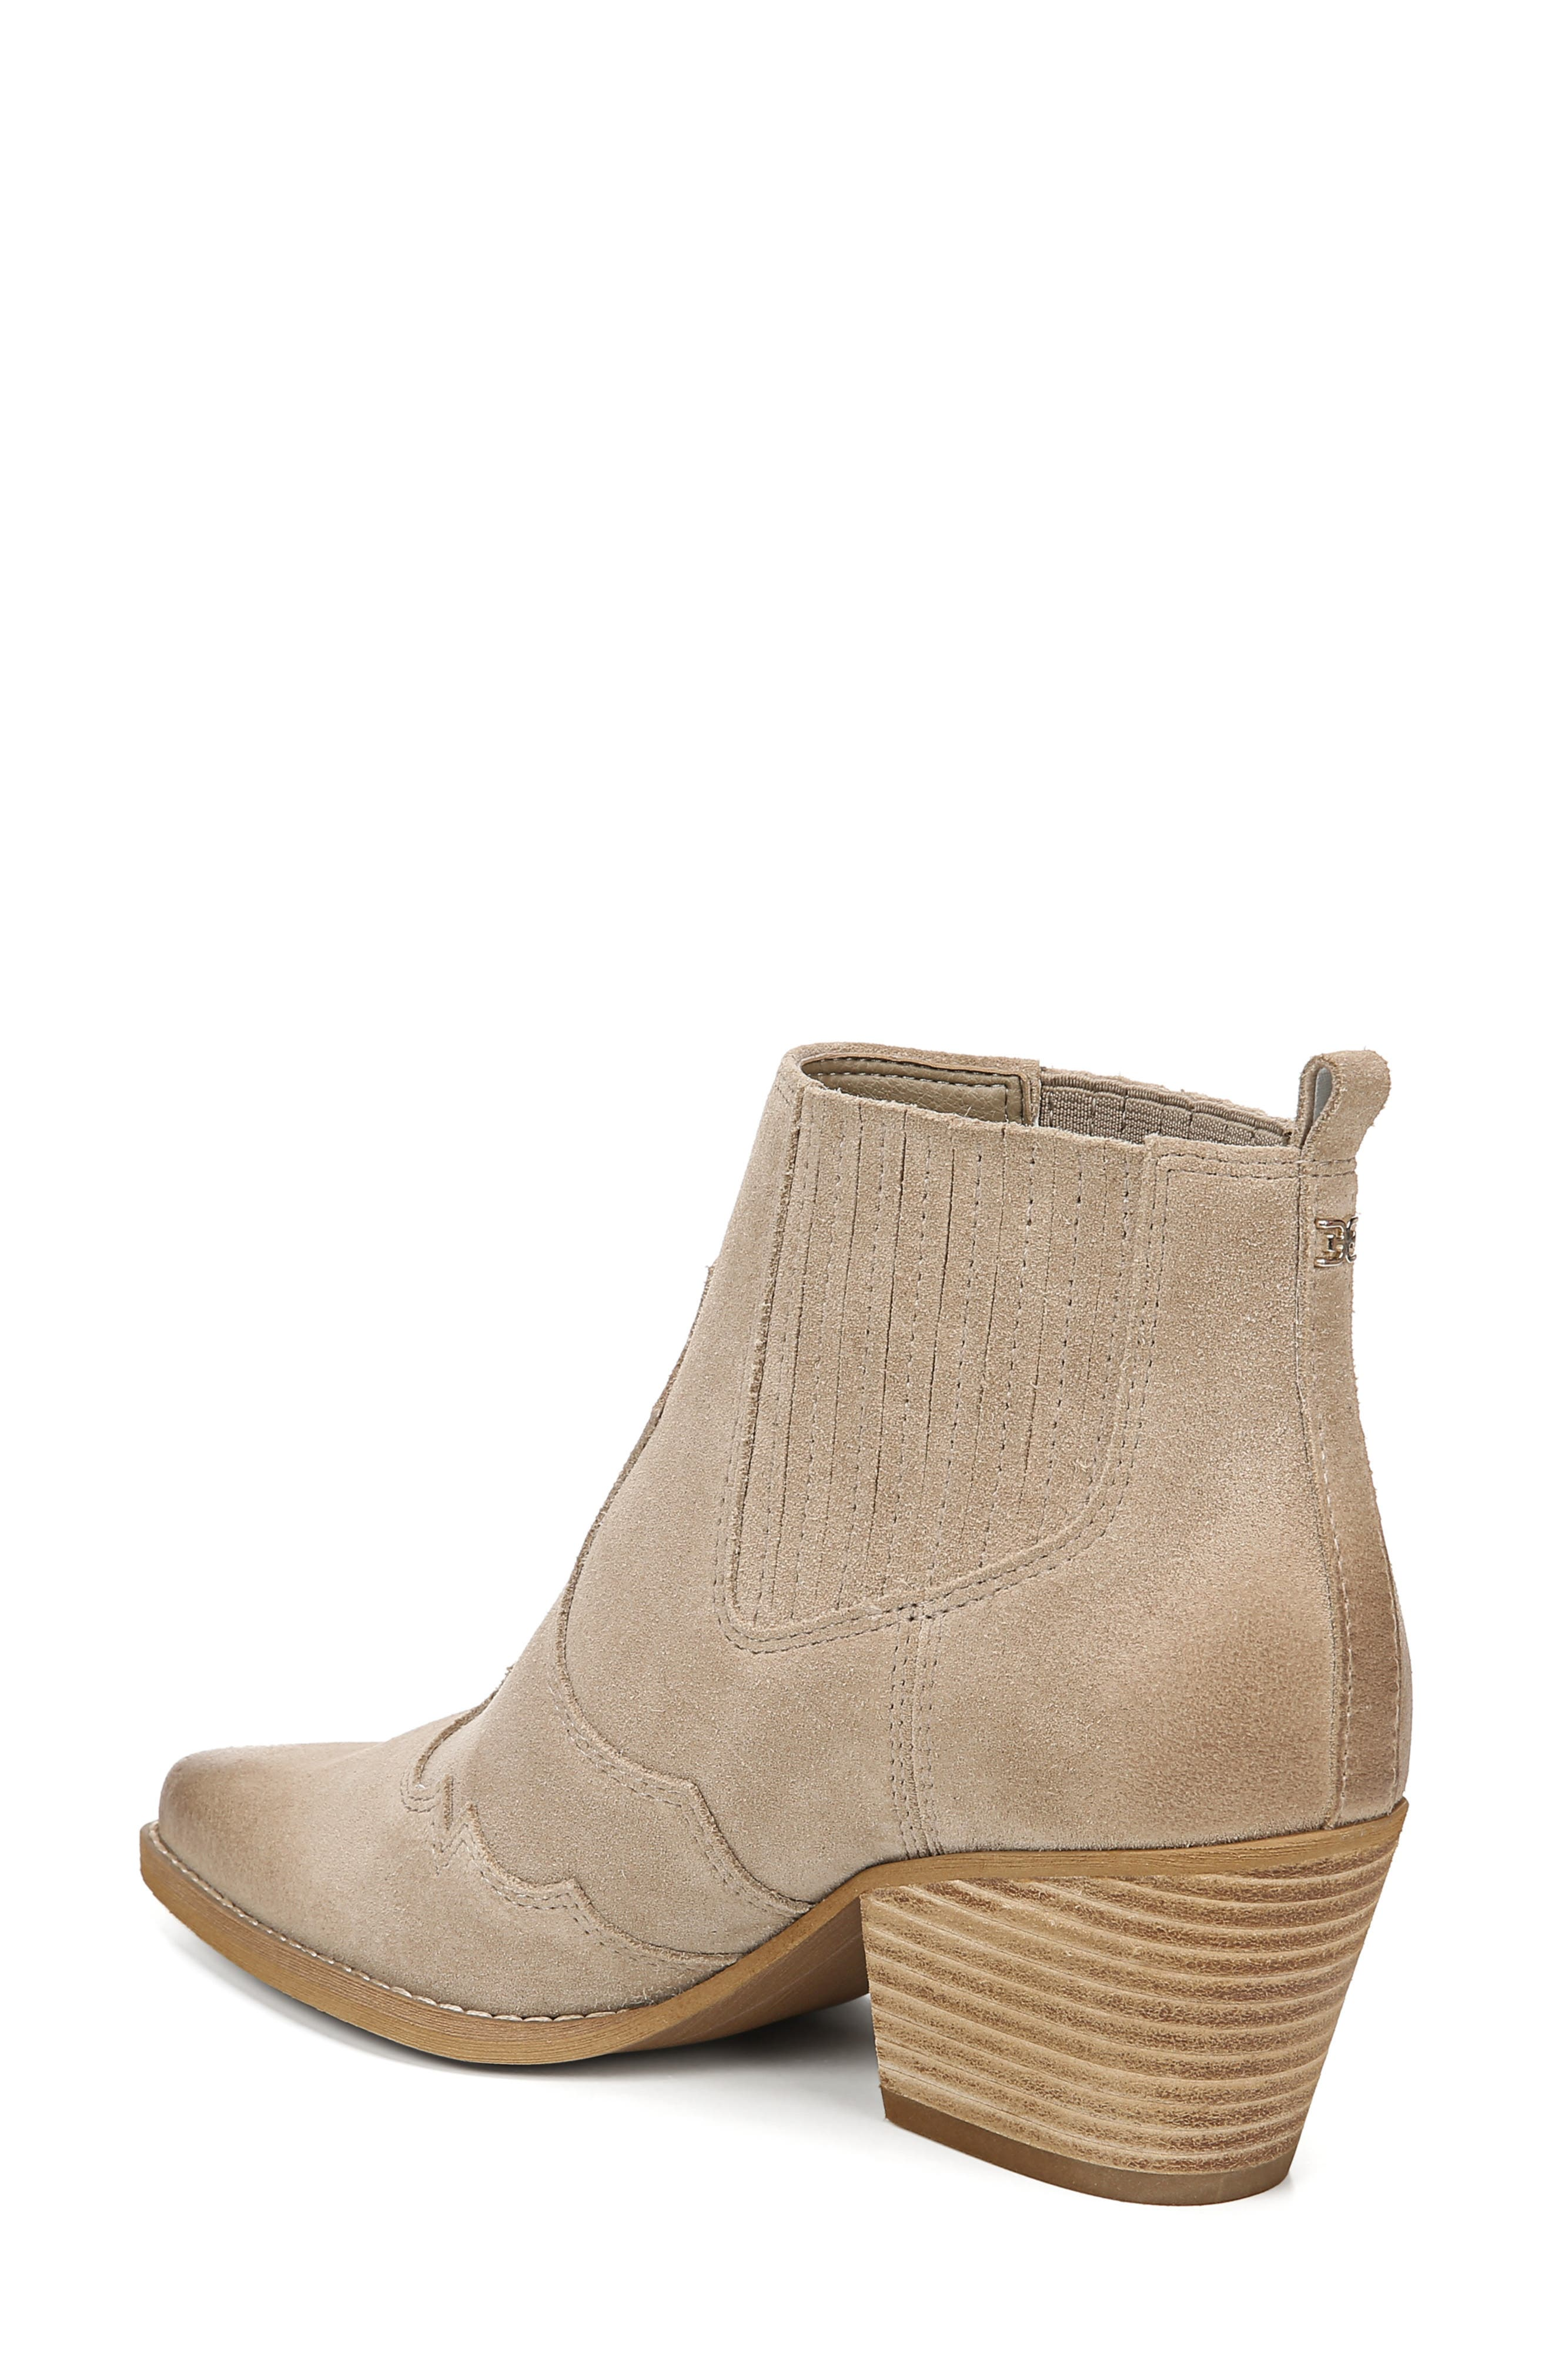 a72610b4a Women s Sam Edelman Booties   Ankle Boots